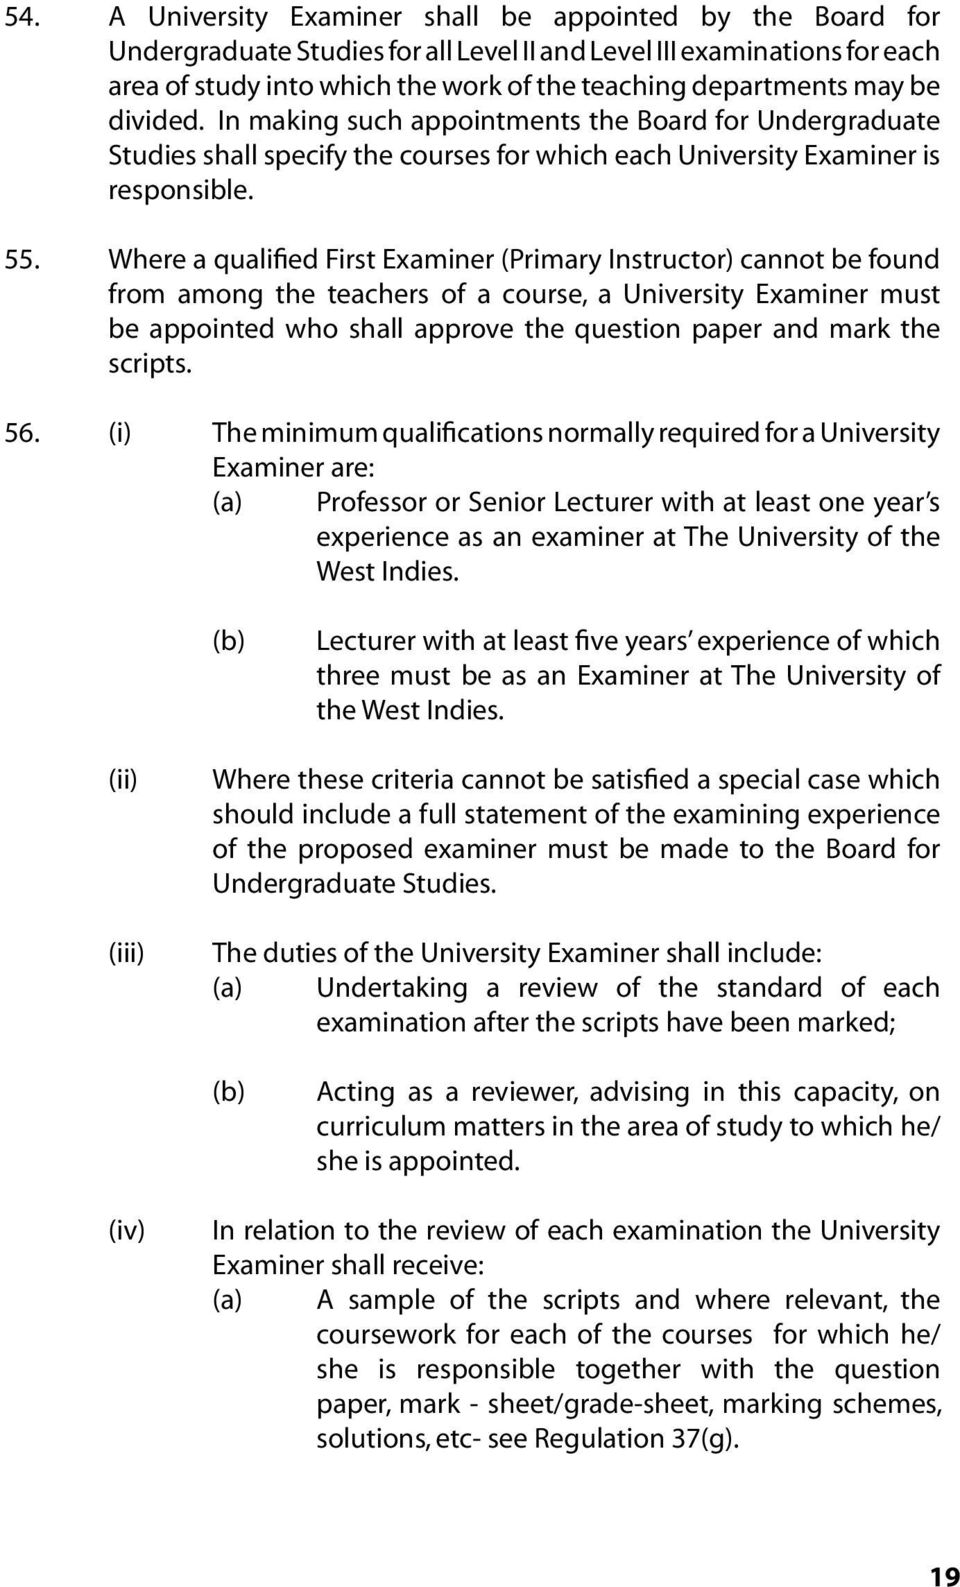 Where a qualified First Examiner (Primary Instructor) cannot be found from among the teachers of a course, a University Examiner must be appointed who shall approve the question paper and mark the